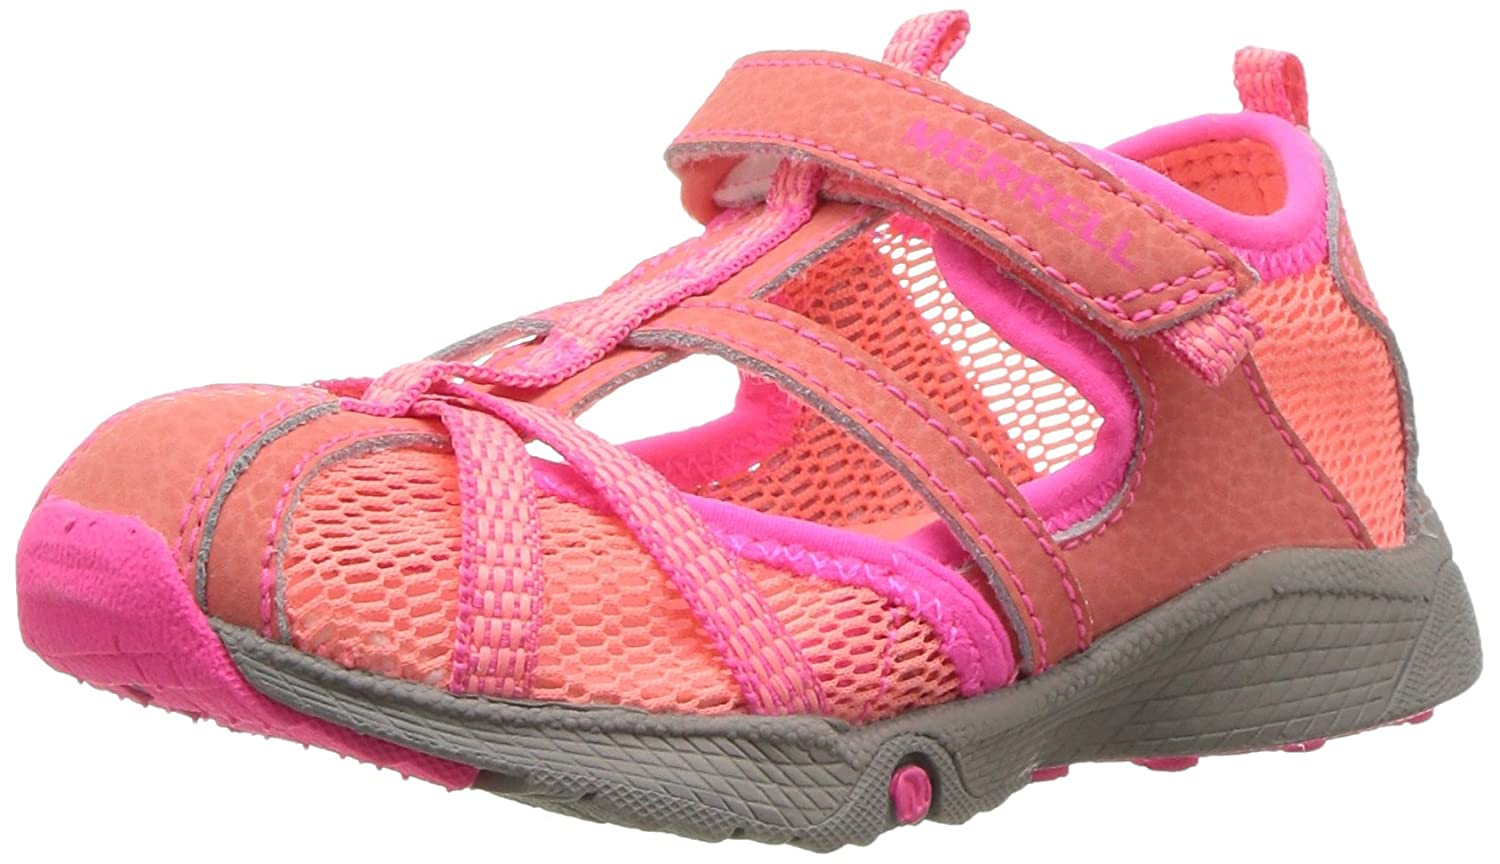 Merrell Hydro Monarch Water Sandal